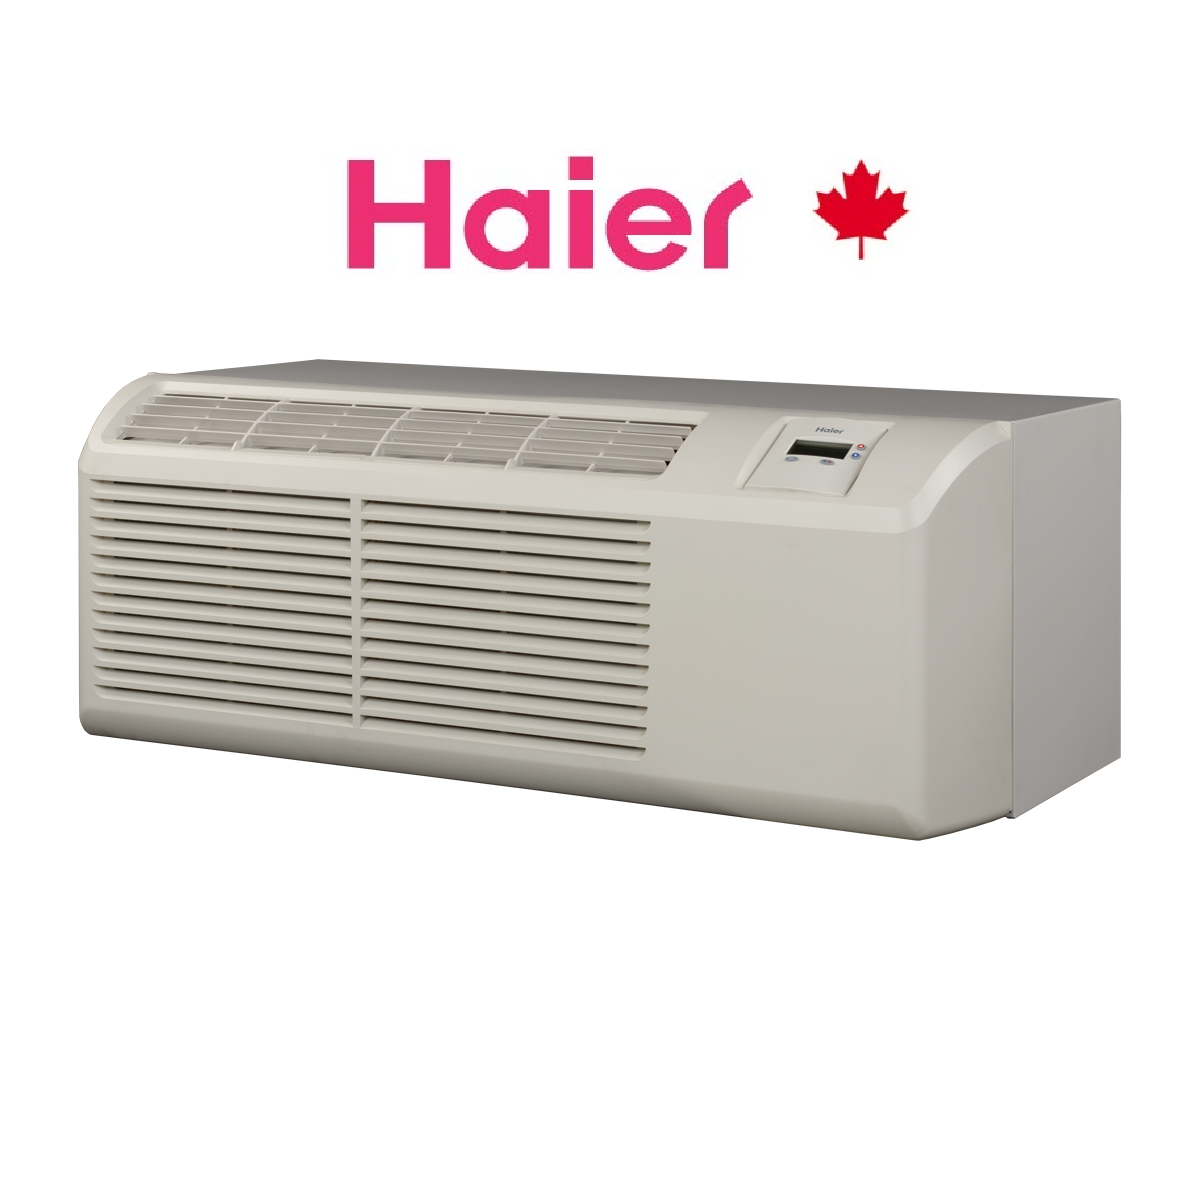 HAIER PTAC UNITS PTHH1201UAC HEAT PUMPCOOLING AND HEATING